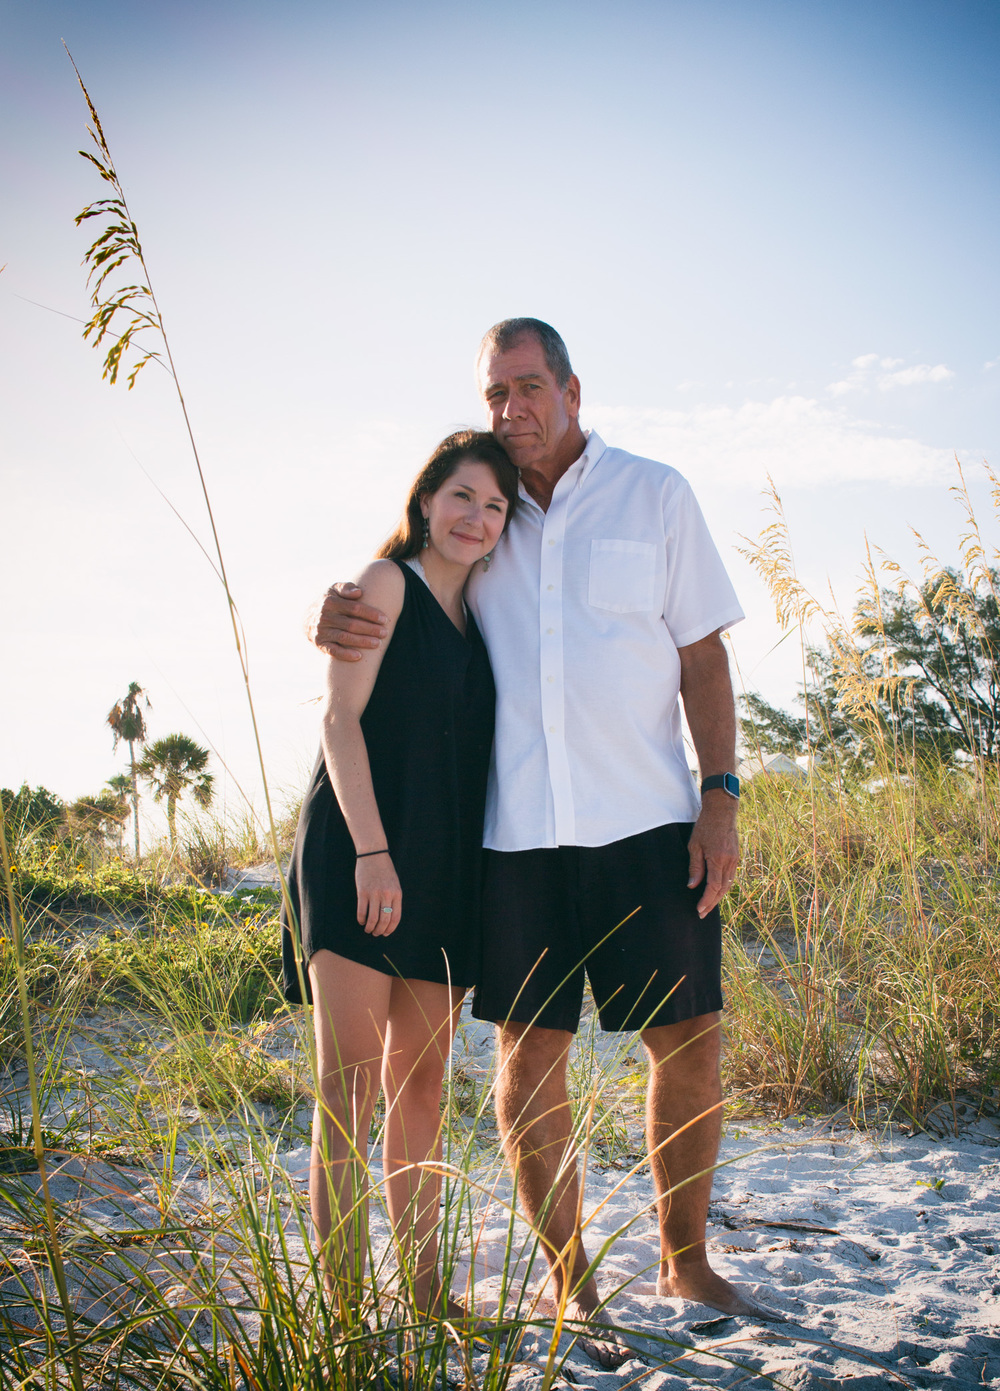 A sweet father and daughter photo amongst the sand and long grass at Pass-a-Grille Beach.